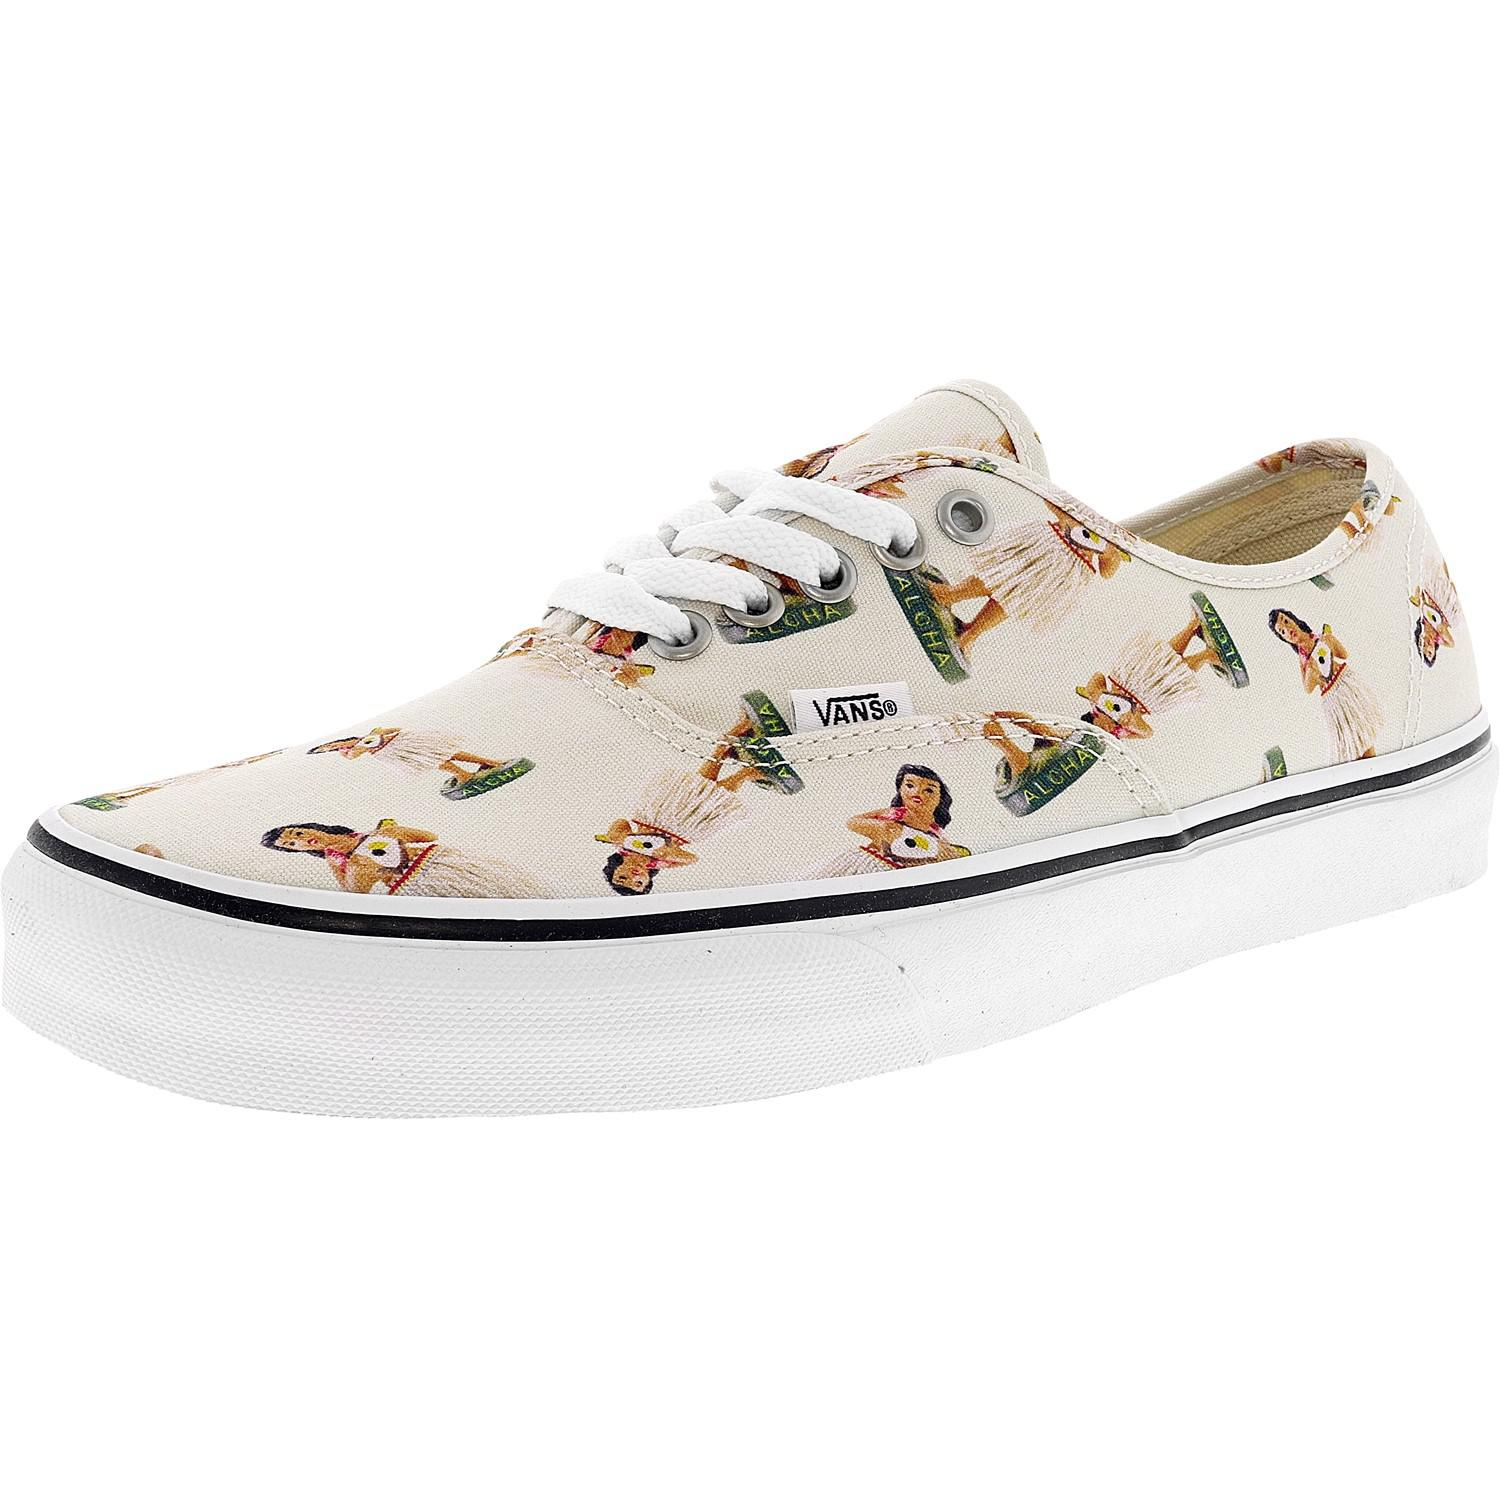 ee0383b6ace Lyst - Vans Authentic Digi Hula Classic White   True Ankle-high ...